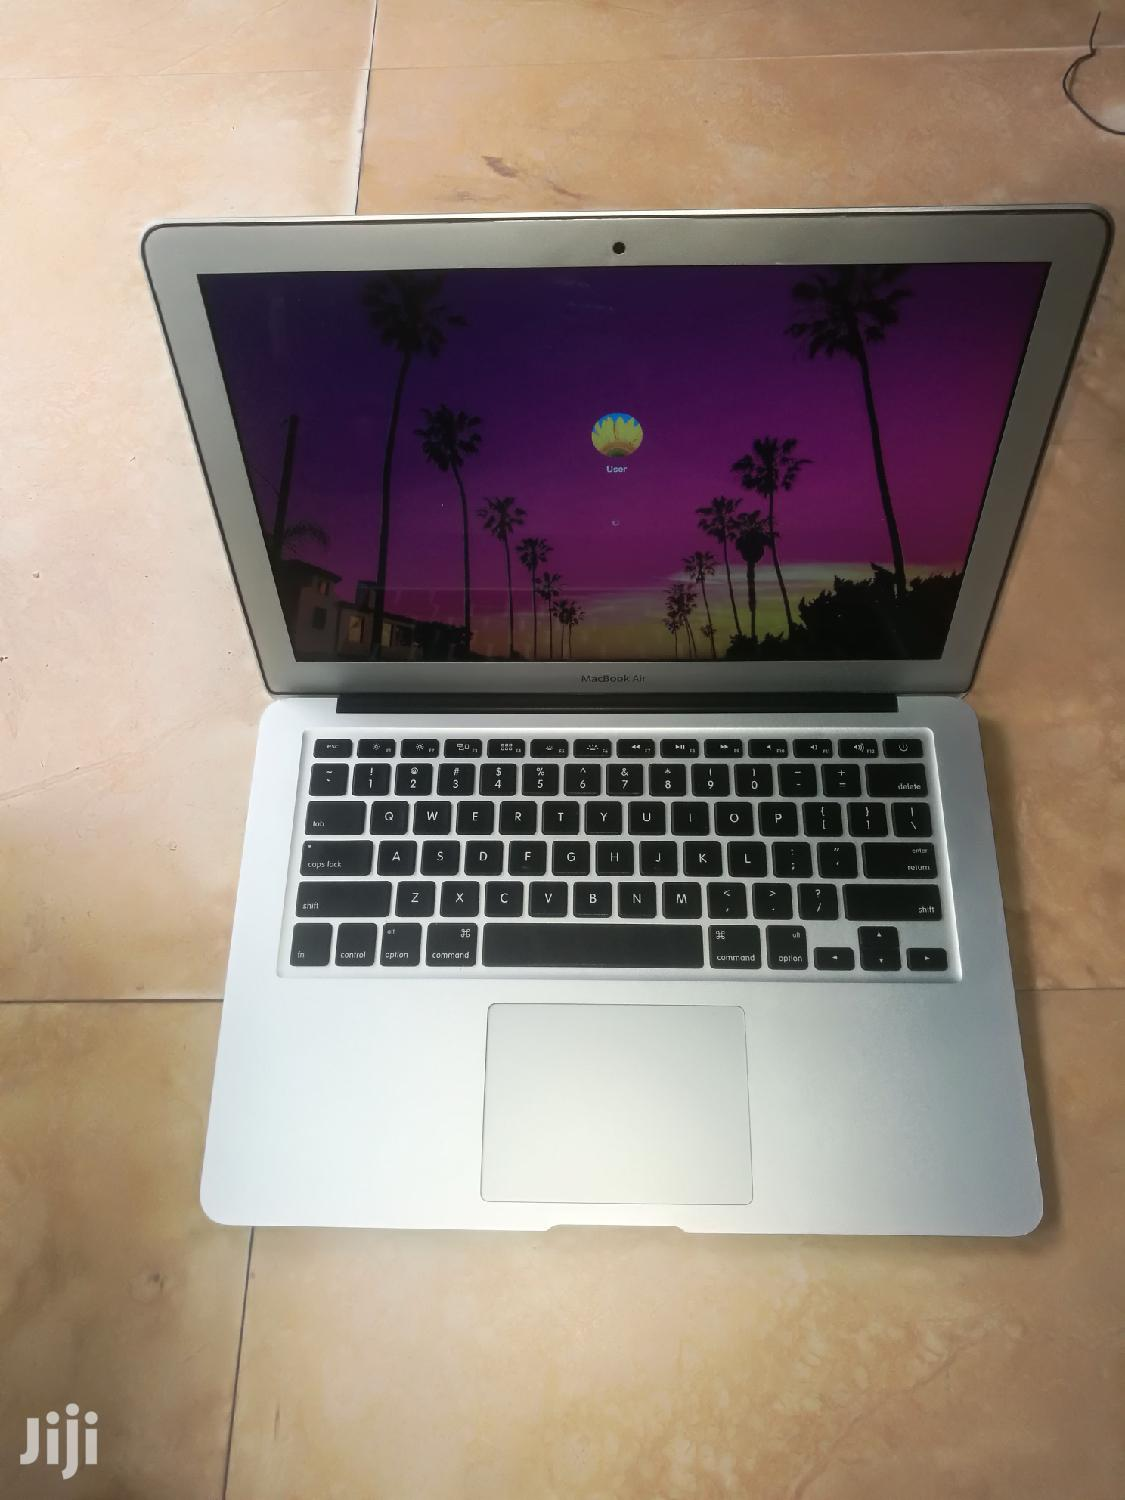 Laptop Apple MacBook Air 4GB Intel Core i5 SSD 128GB | Laptops & Computers for sale in Accra Metropolitan, Greater Accra, Ghana